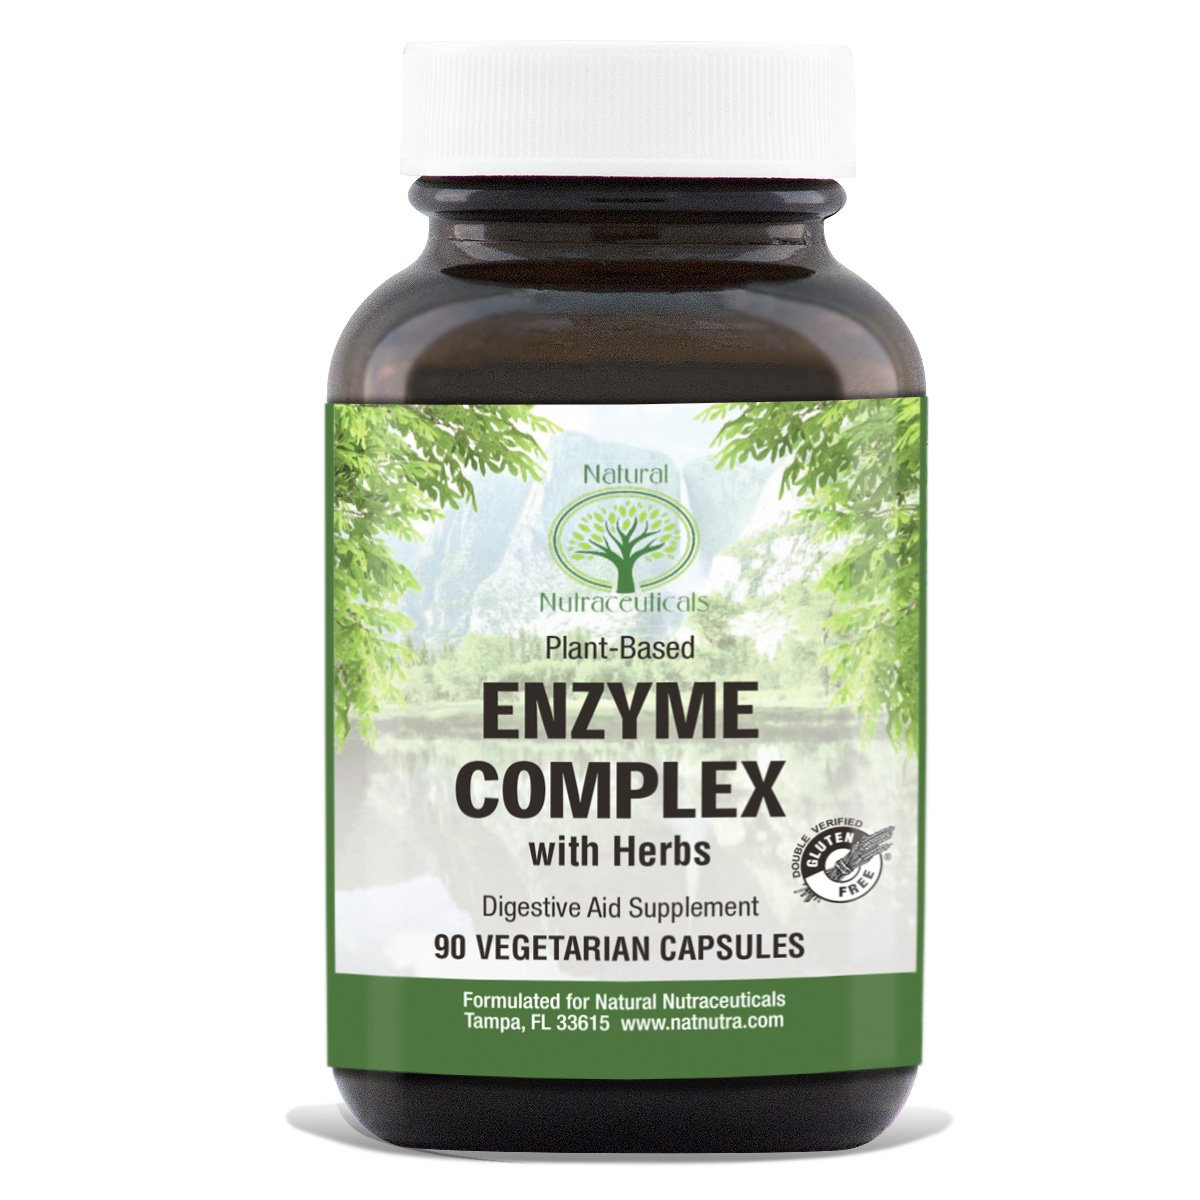 Natural Nutra Digestive Enzyme Complex with Herbs, Amylase, Bromelain, Lipase, Protease, Lactase, Plant Based, 90 Vegan Capsules